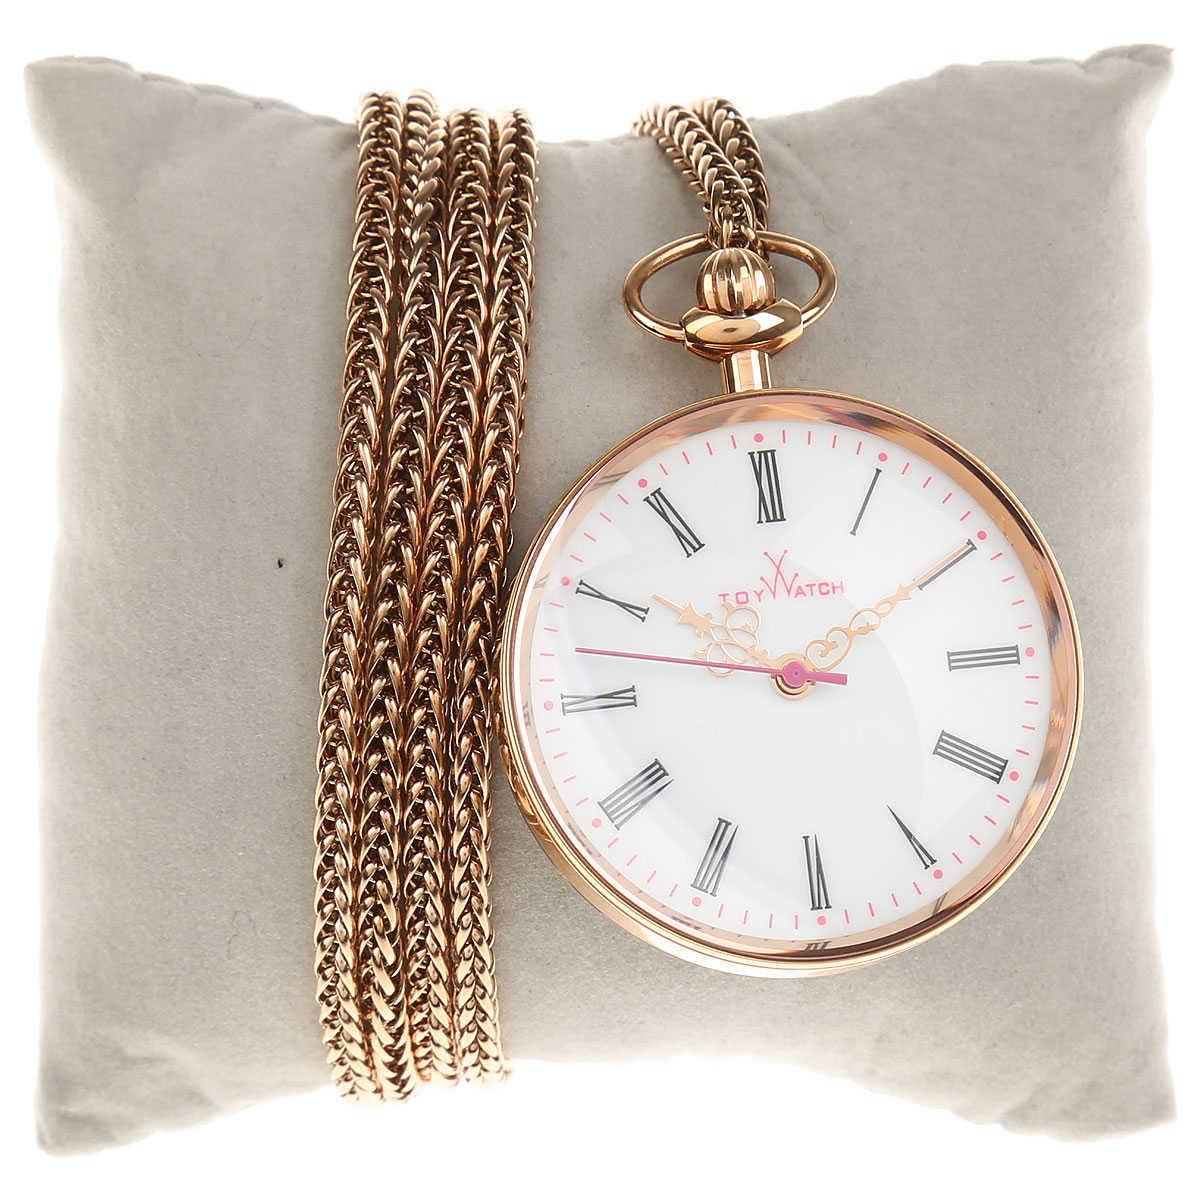 Toy Watch Watch for Women On Sale Gold UK - GOOFASH - Womens WATCHES